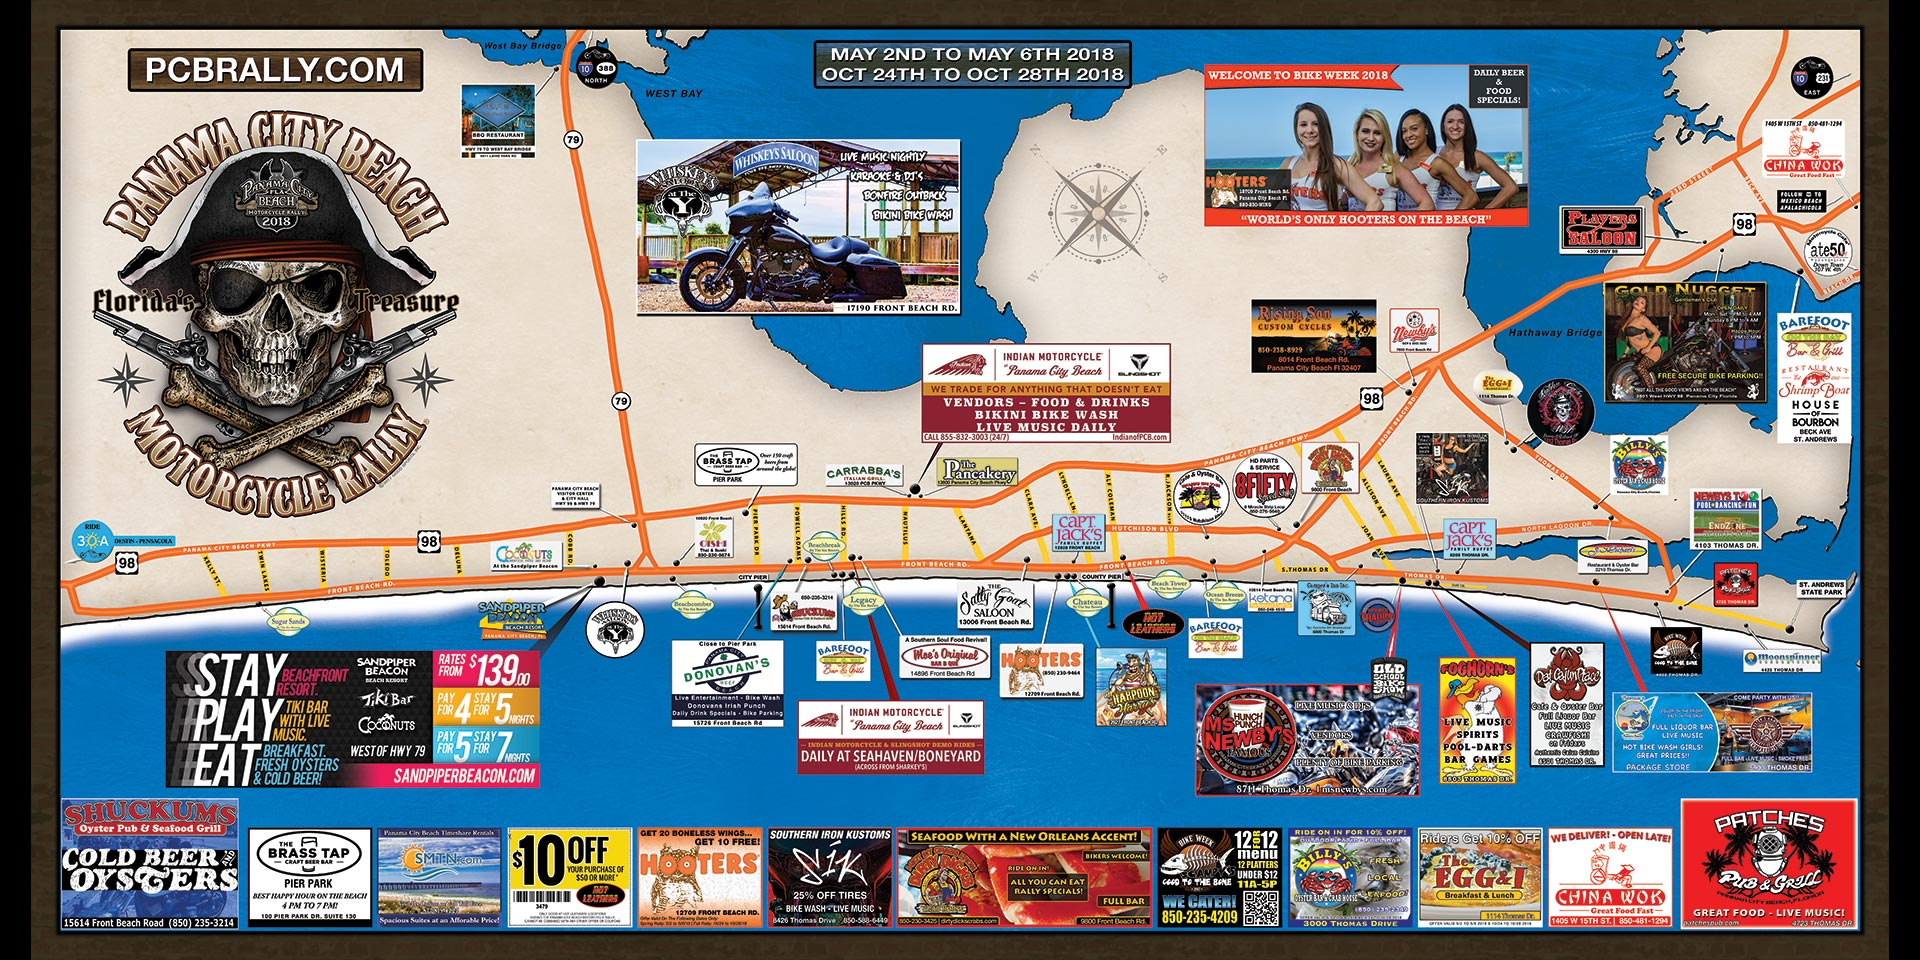 2018 Panama City Beach Motorcycle Rally Map